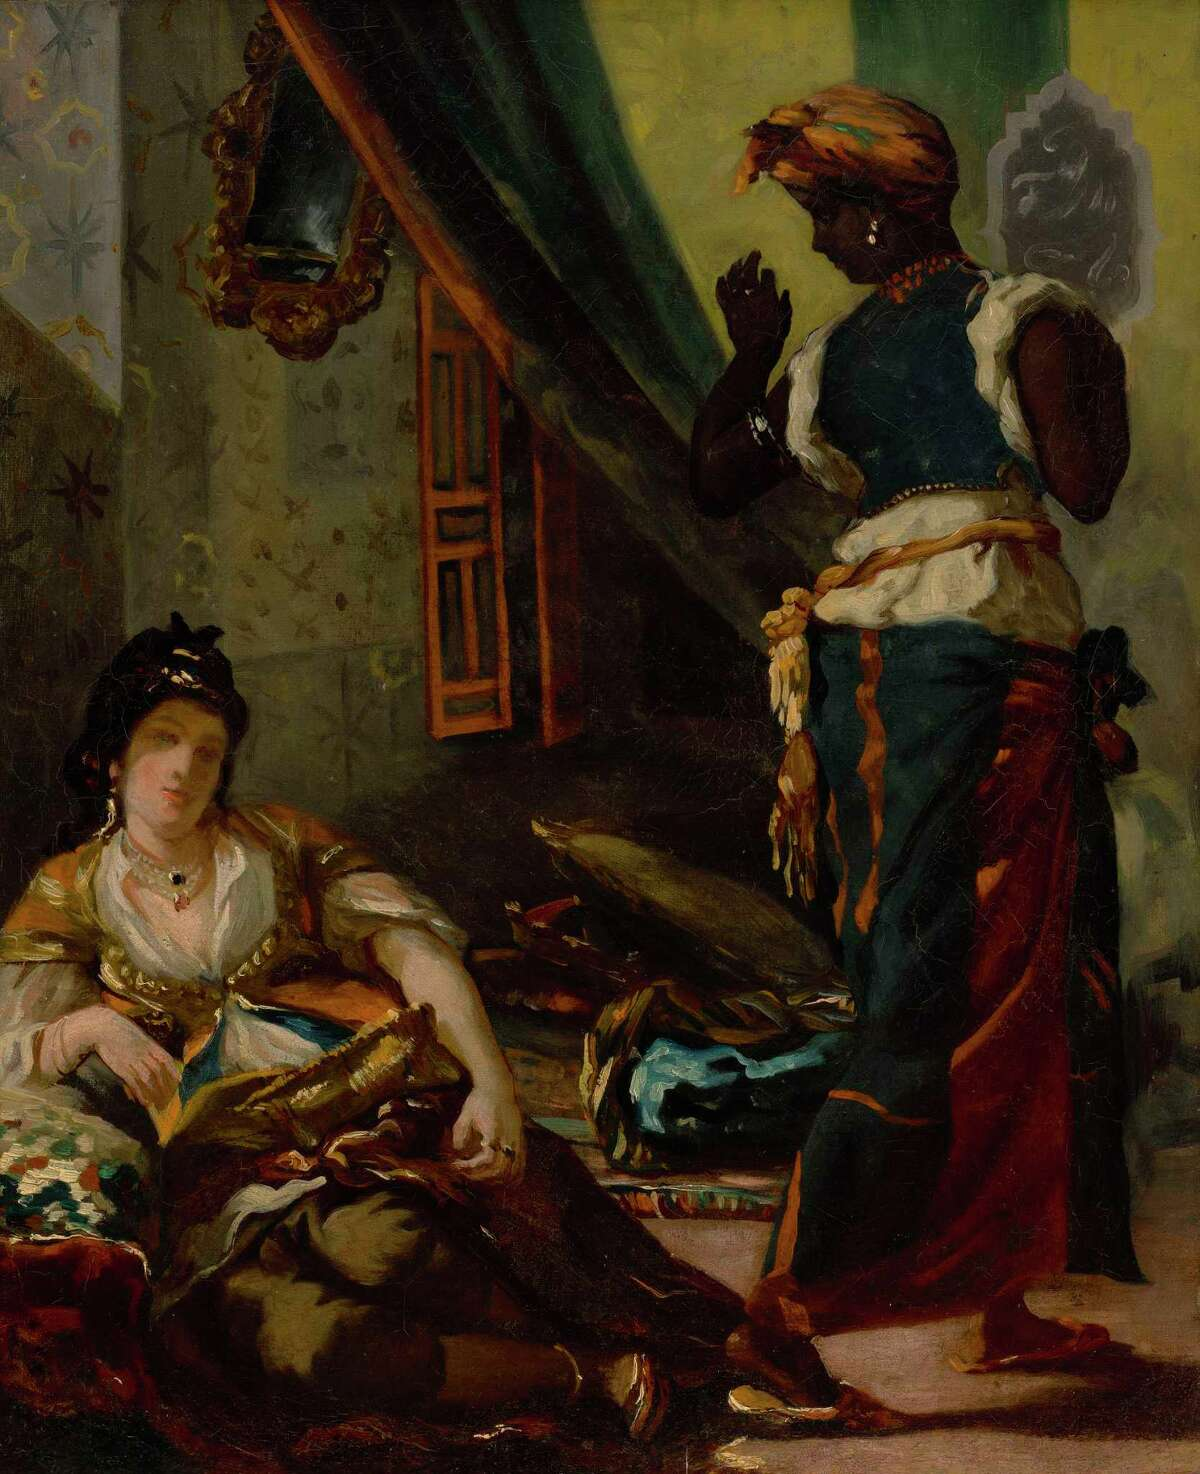 """Eugene Delacroix's """"Women of Algiers in Their Apartment,"""" from 1833-84, is an early version of one of the Romantic era masters' best-known compositions."""